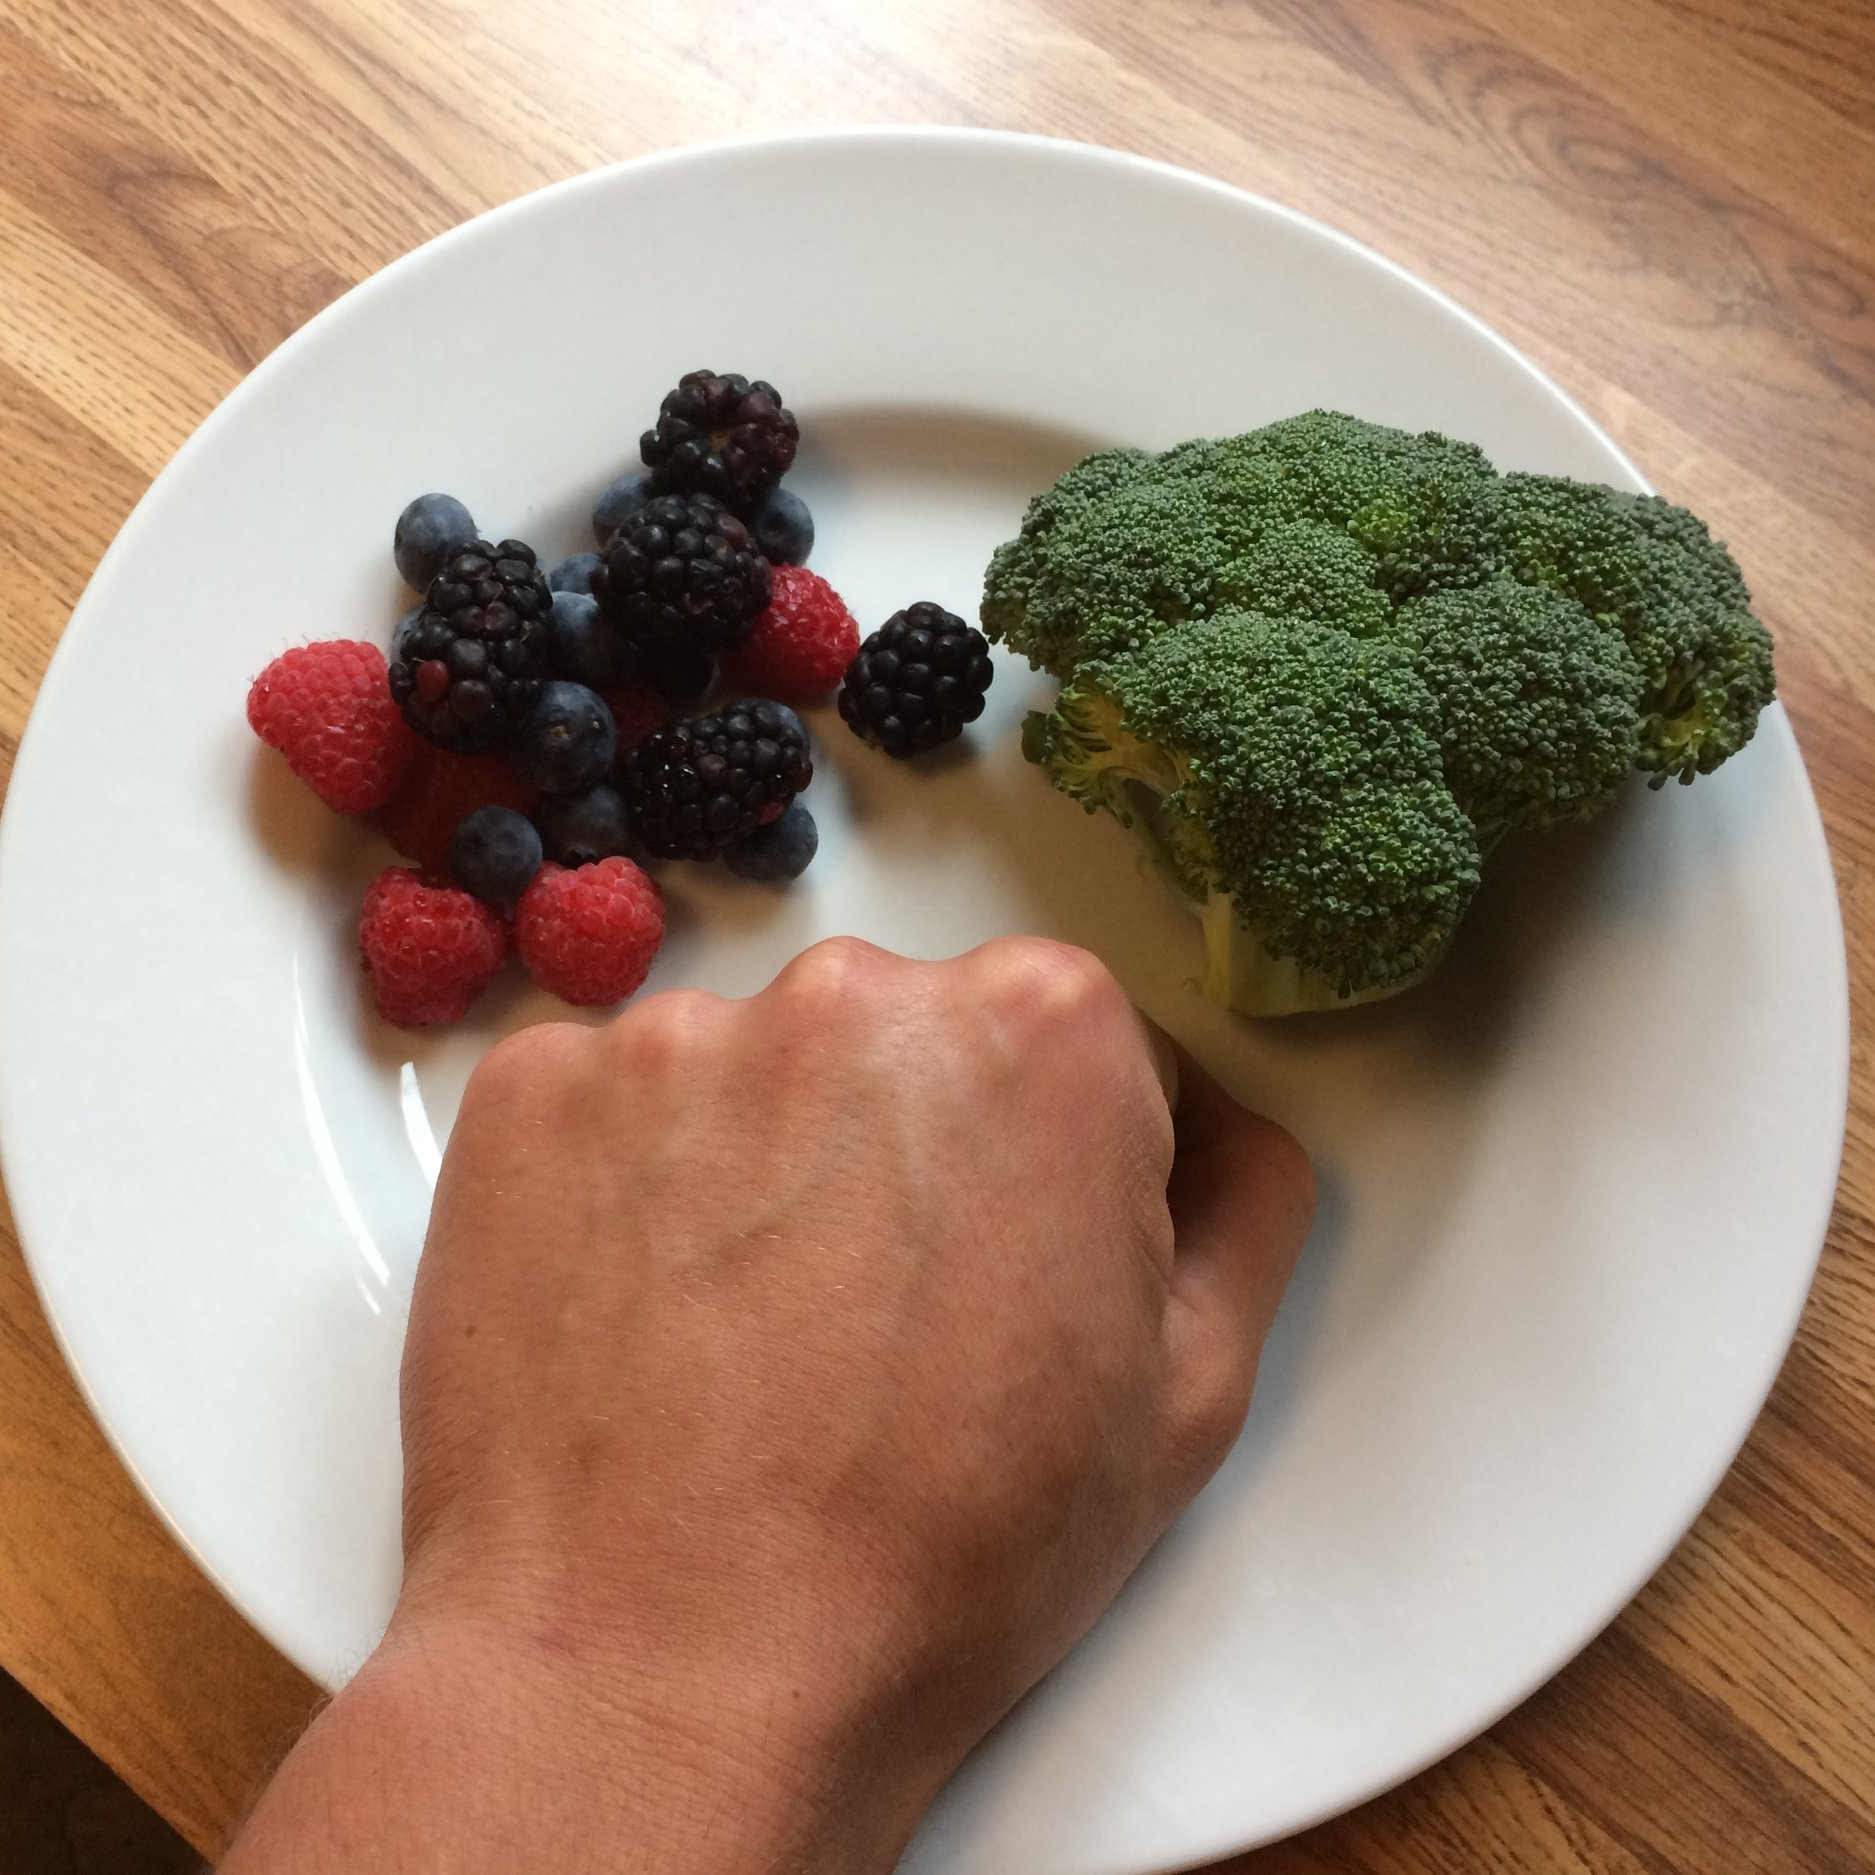 single servings of broccoli and berries